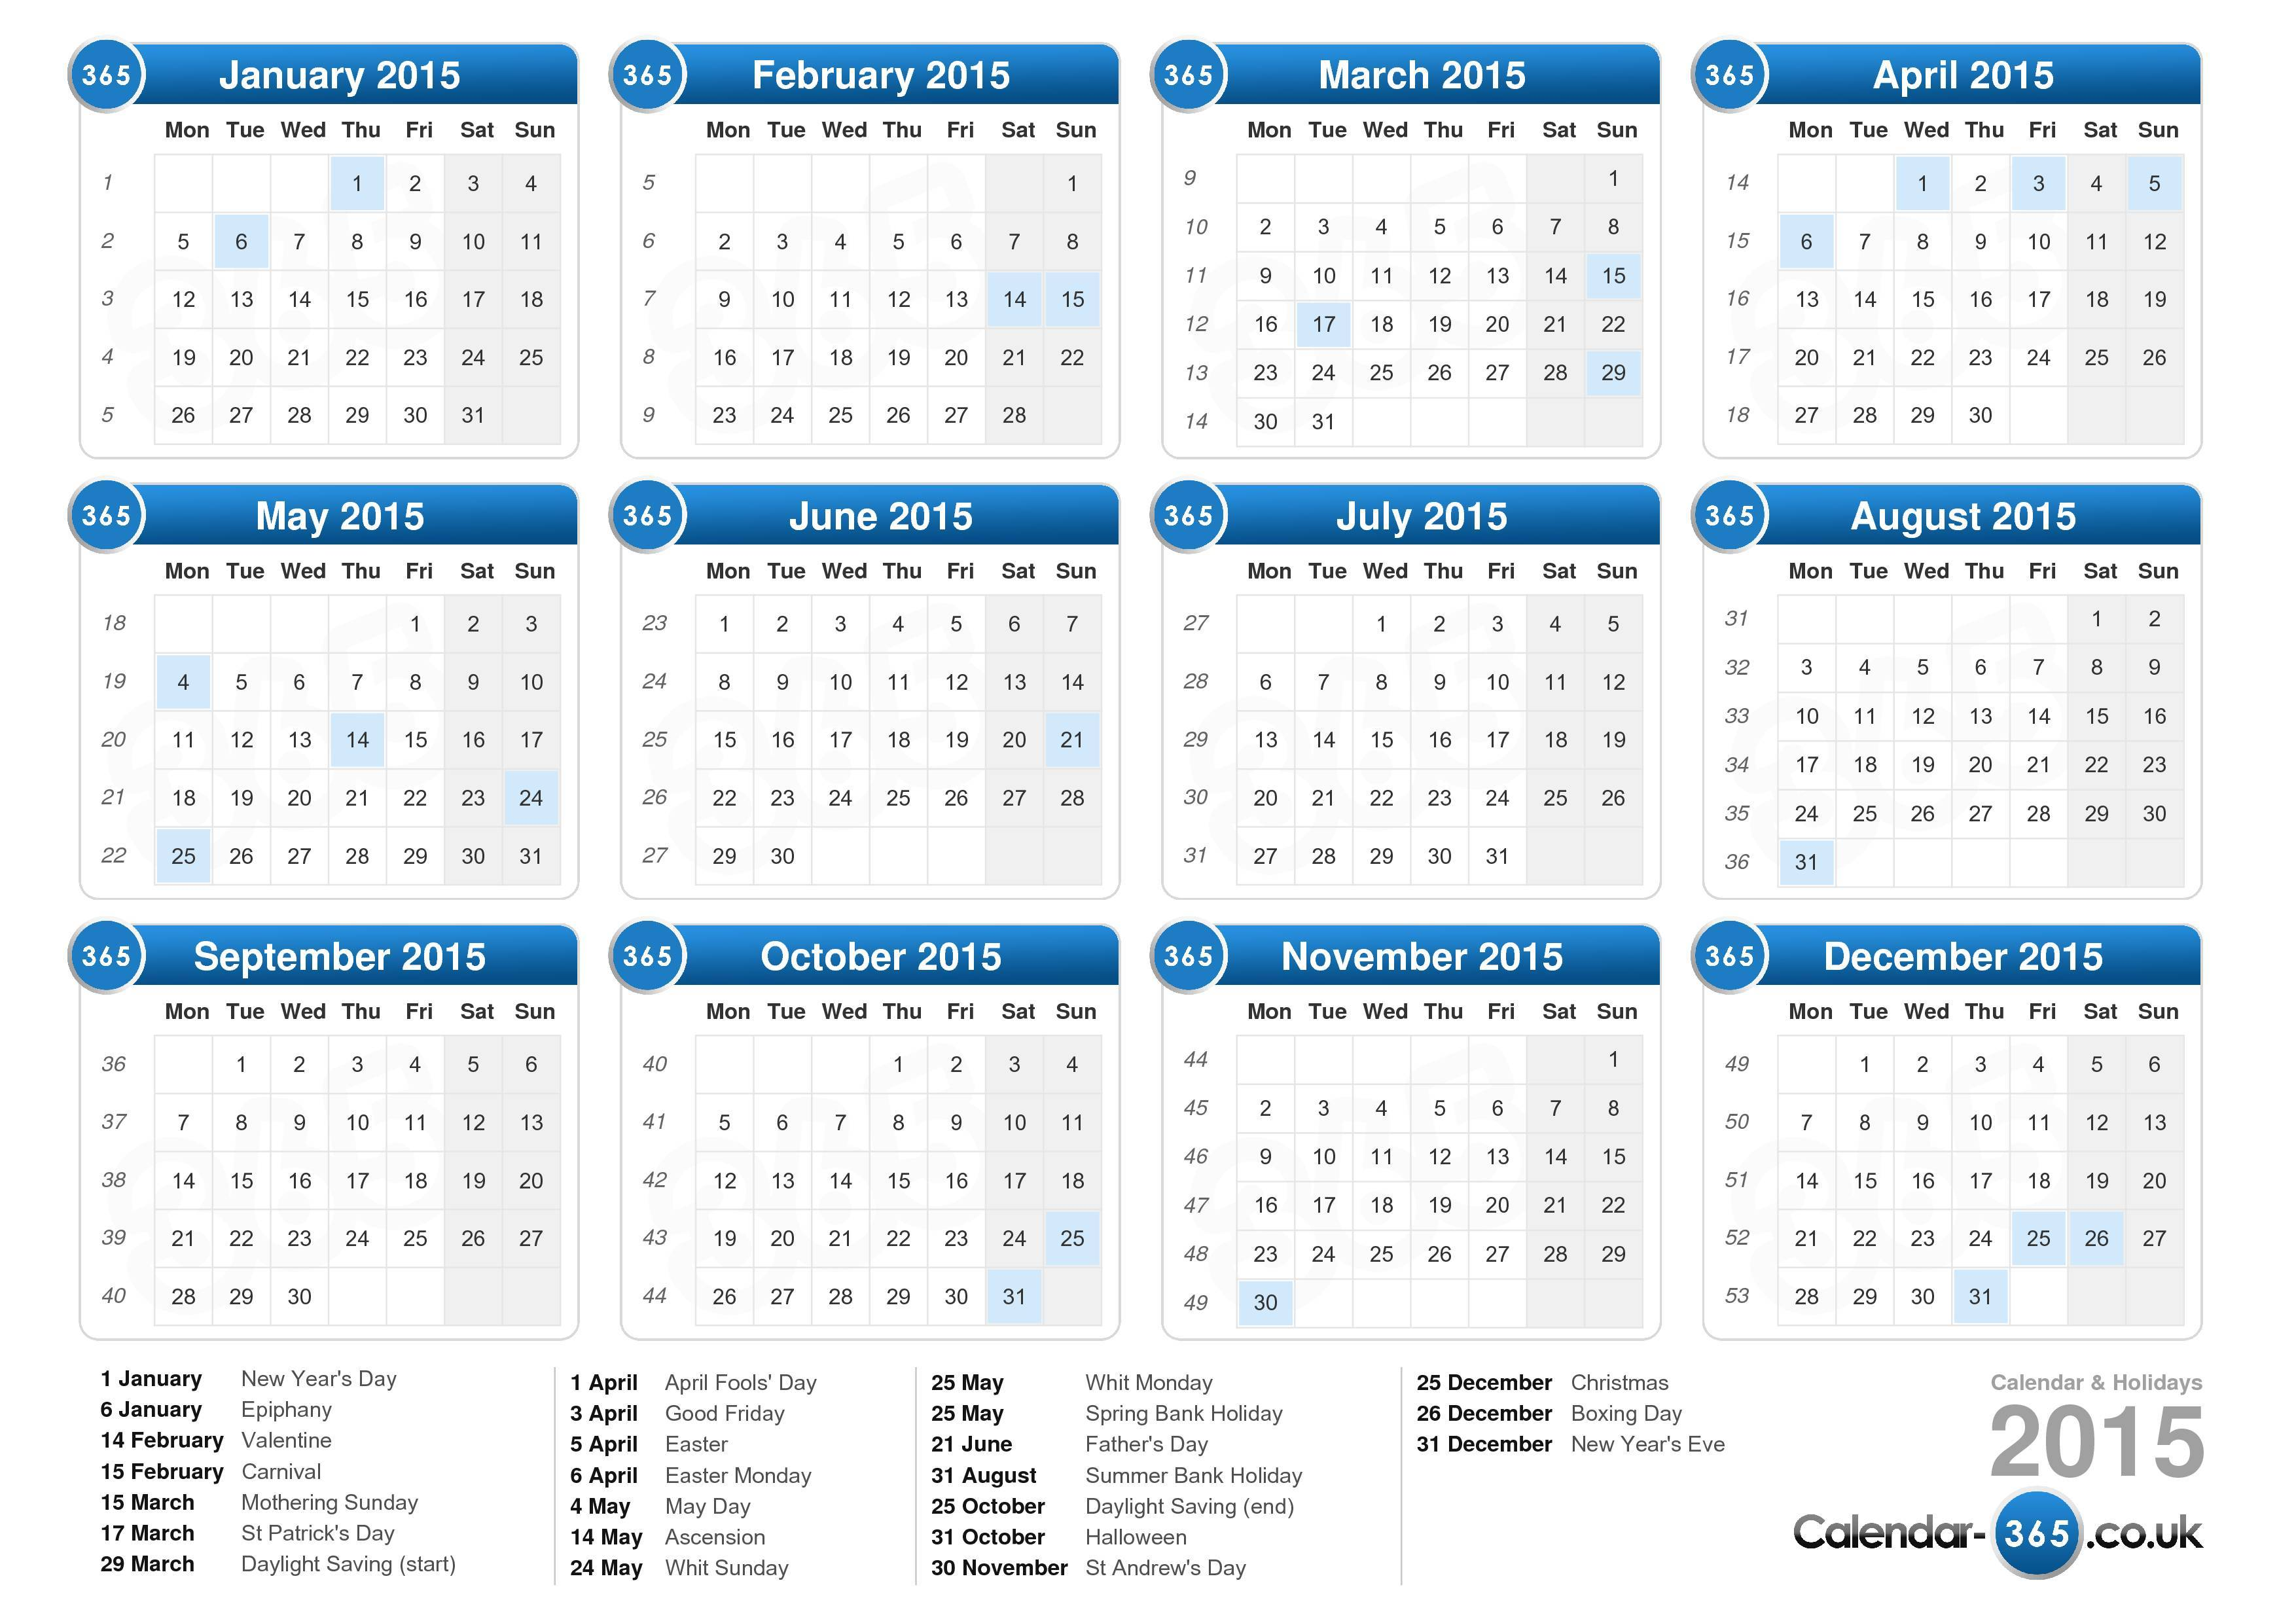 1000+ images about Calendar 2015 on Pinterest